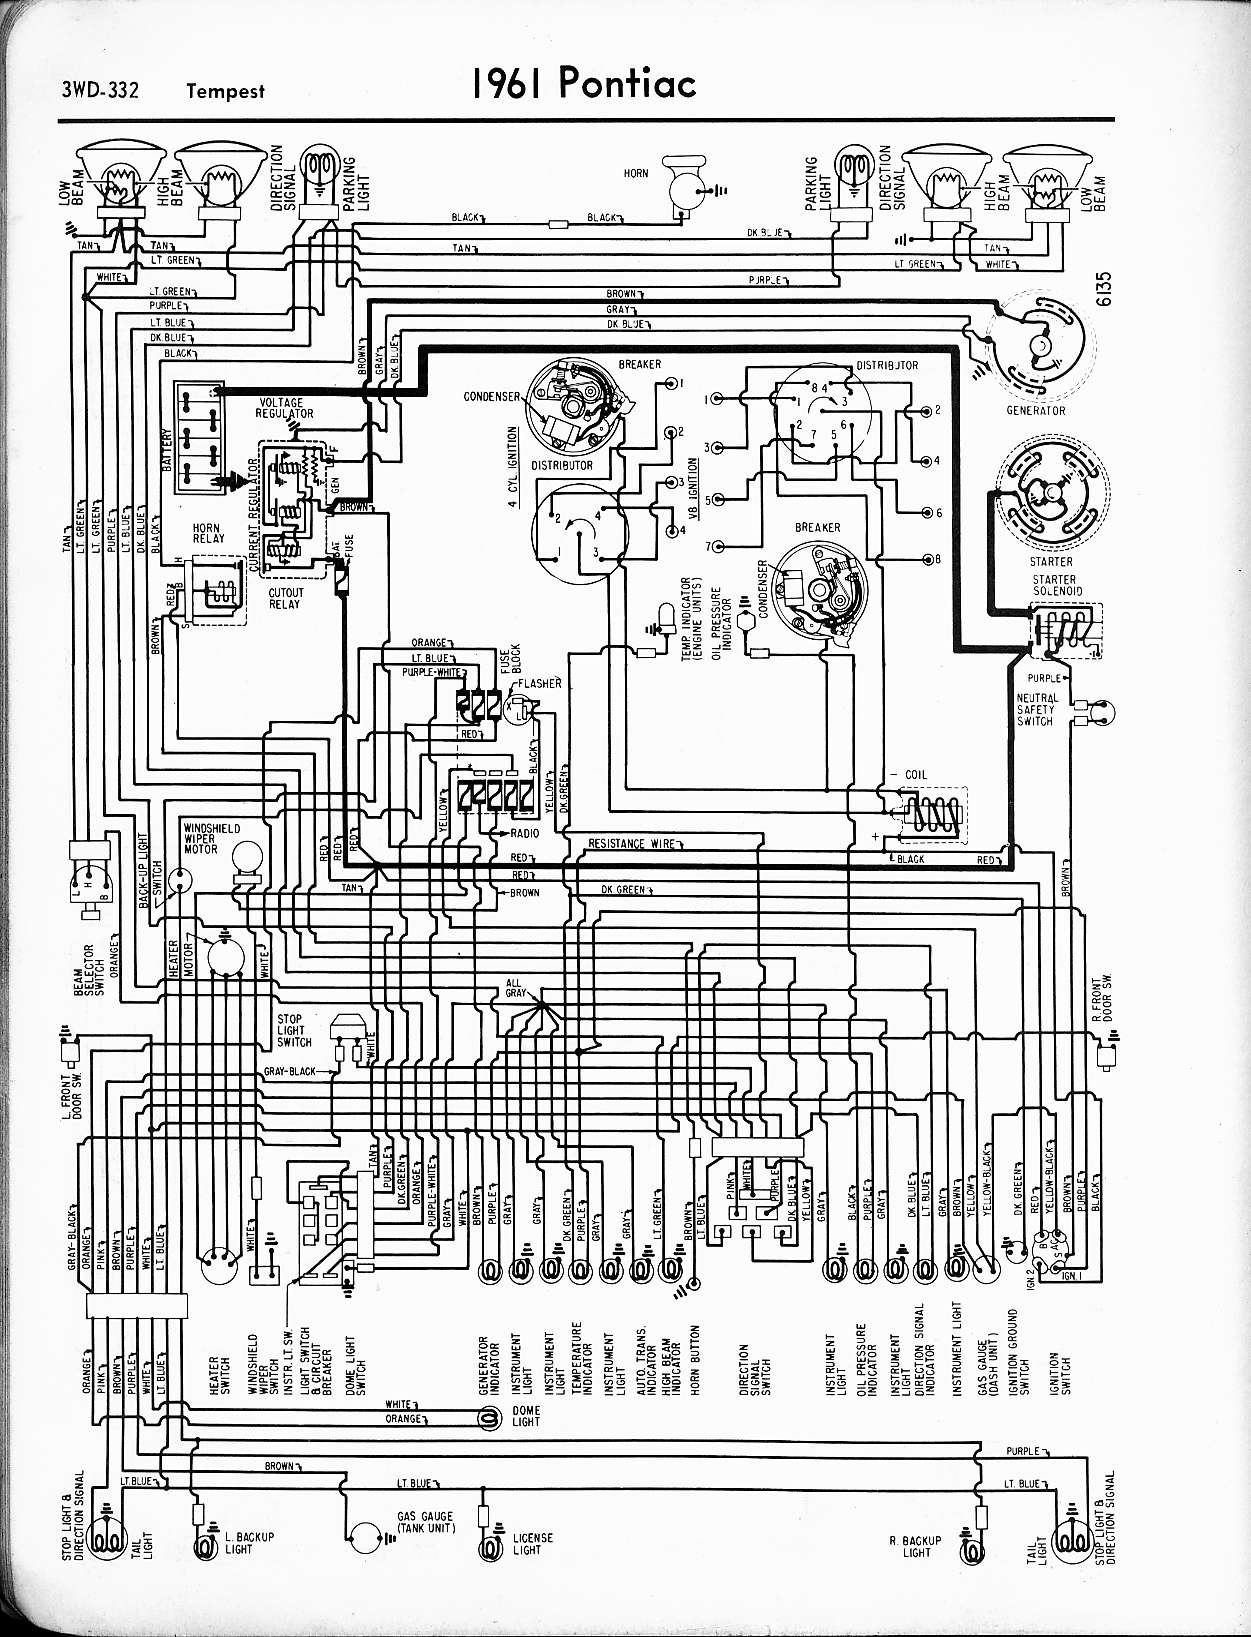 Temperature Gauge Wiring Diagram On 70 Gto Dash Wiring Diagram